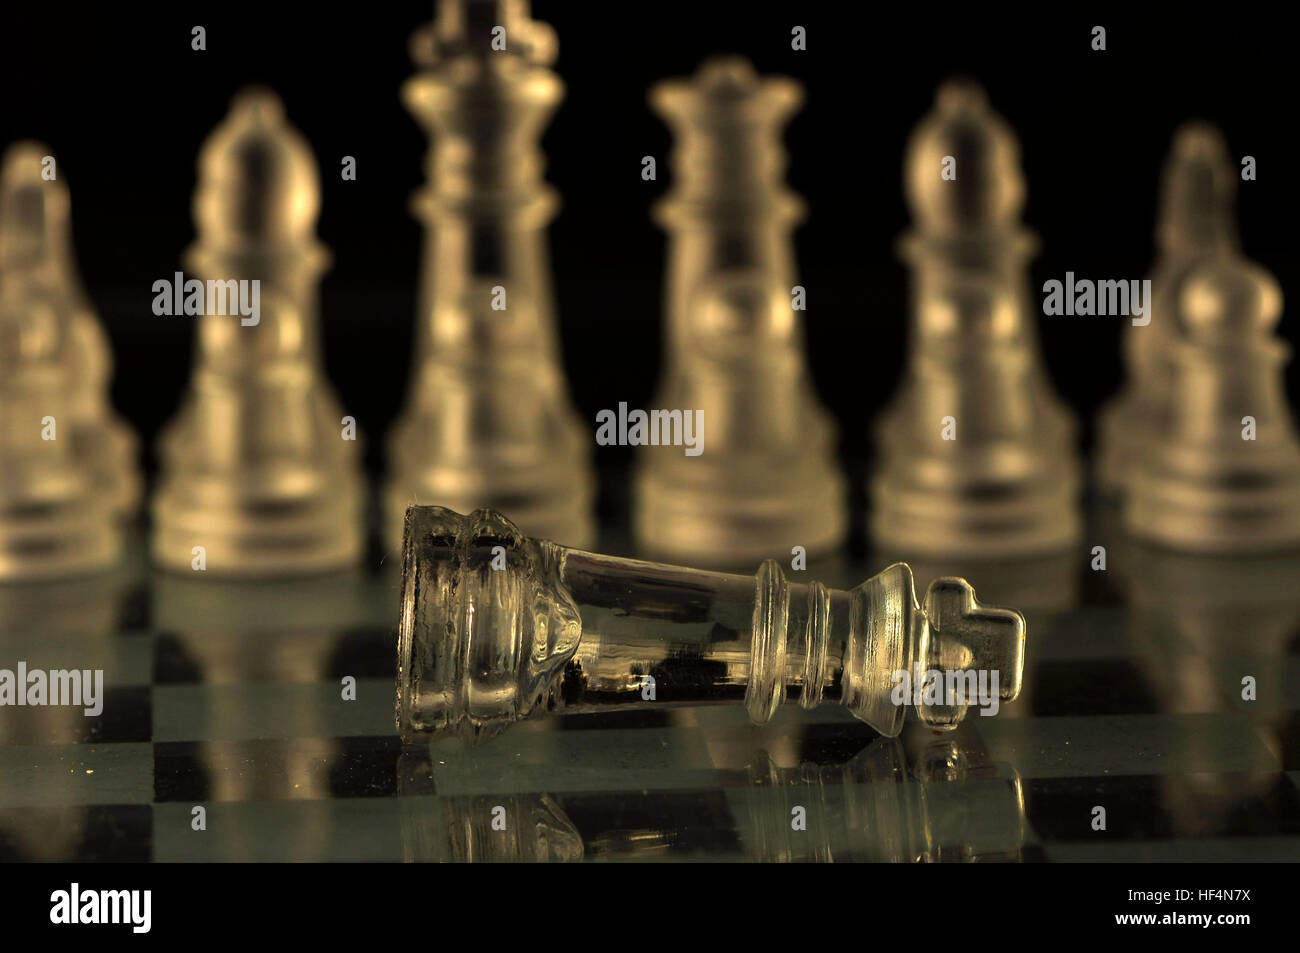 King lying on the chessboard . - Stock Image